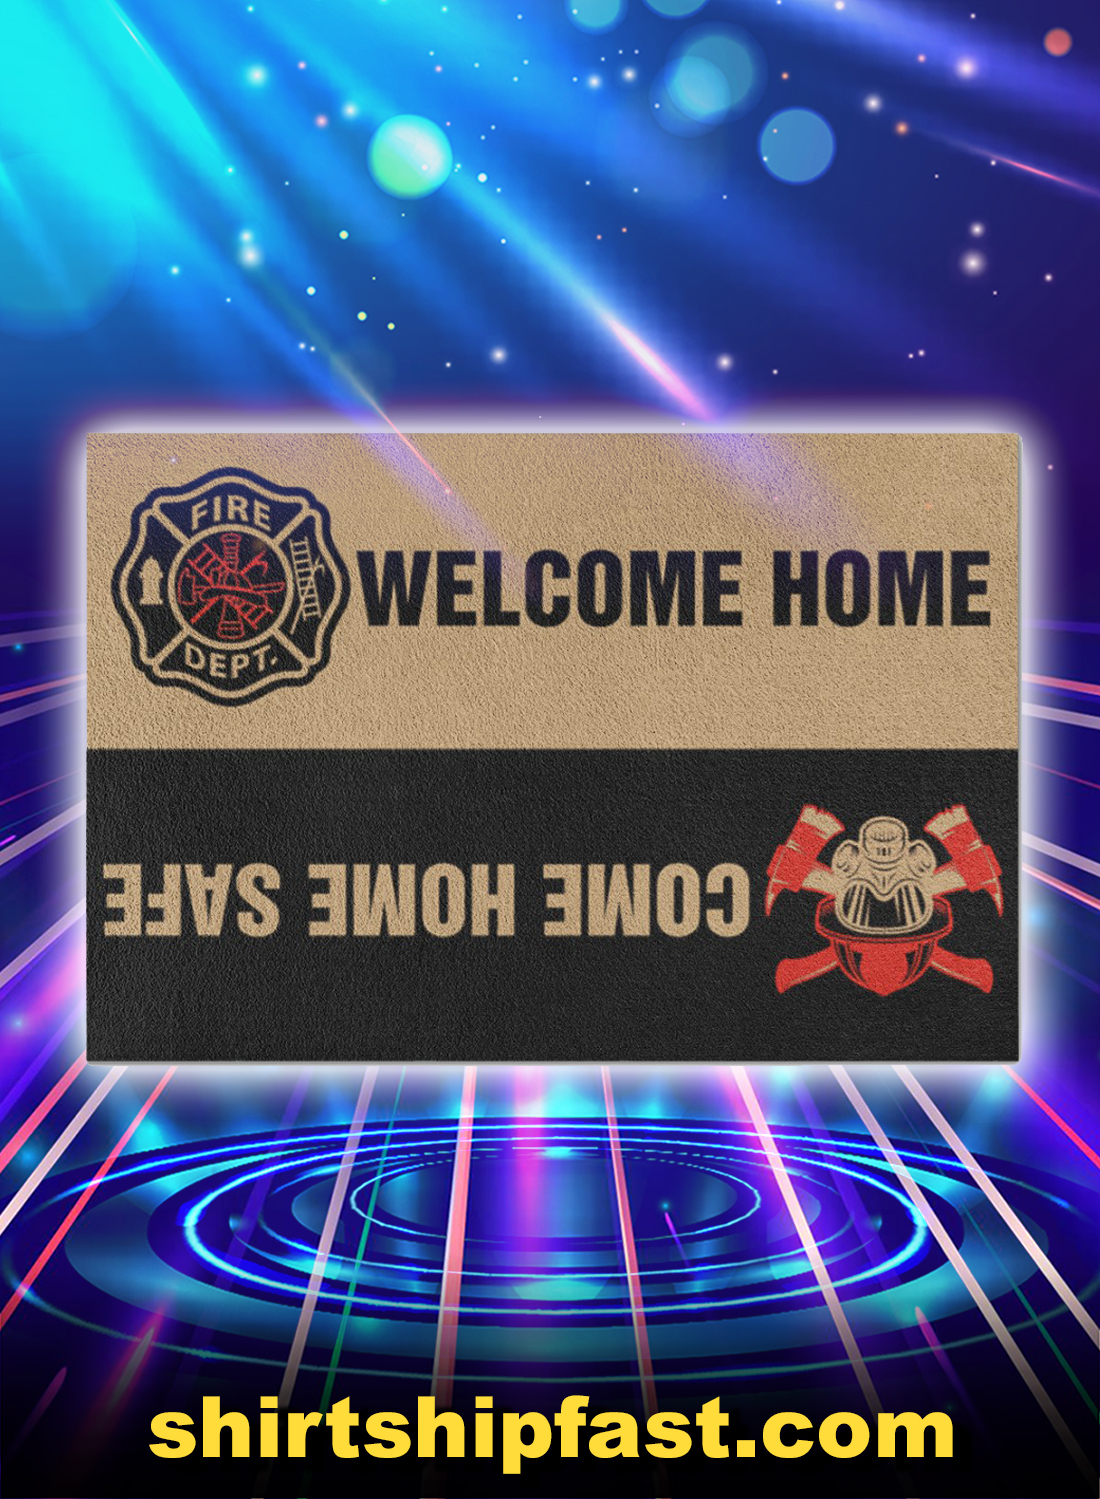 Firefighter welcome home doormat - Picture 1